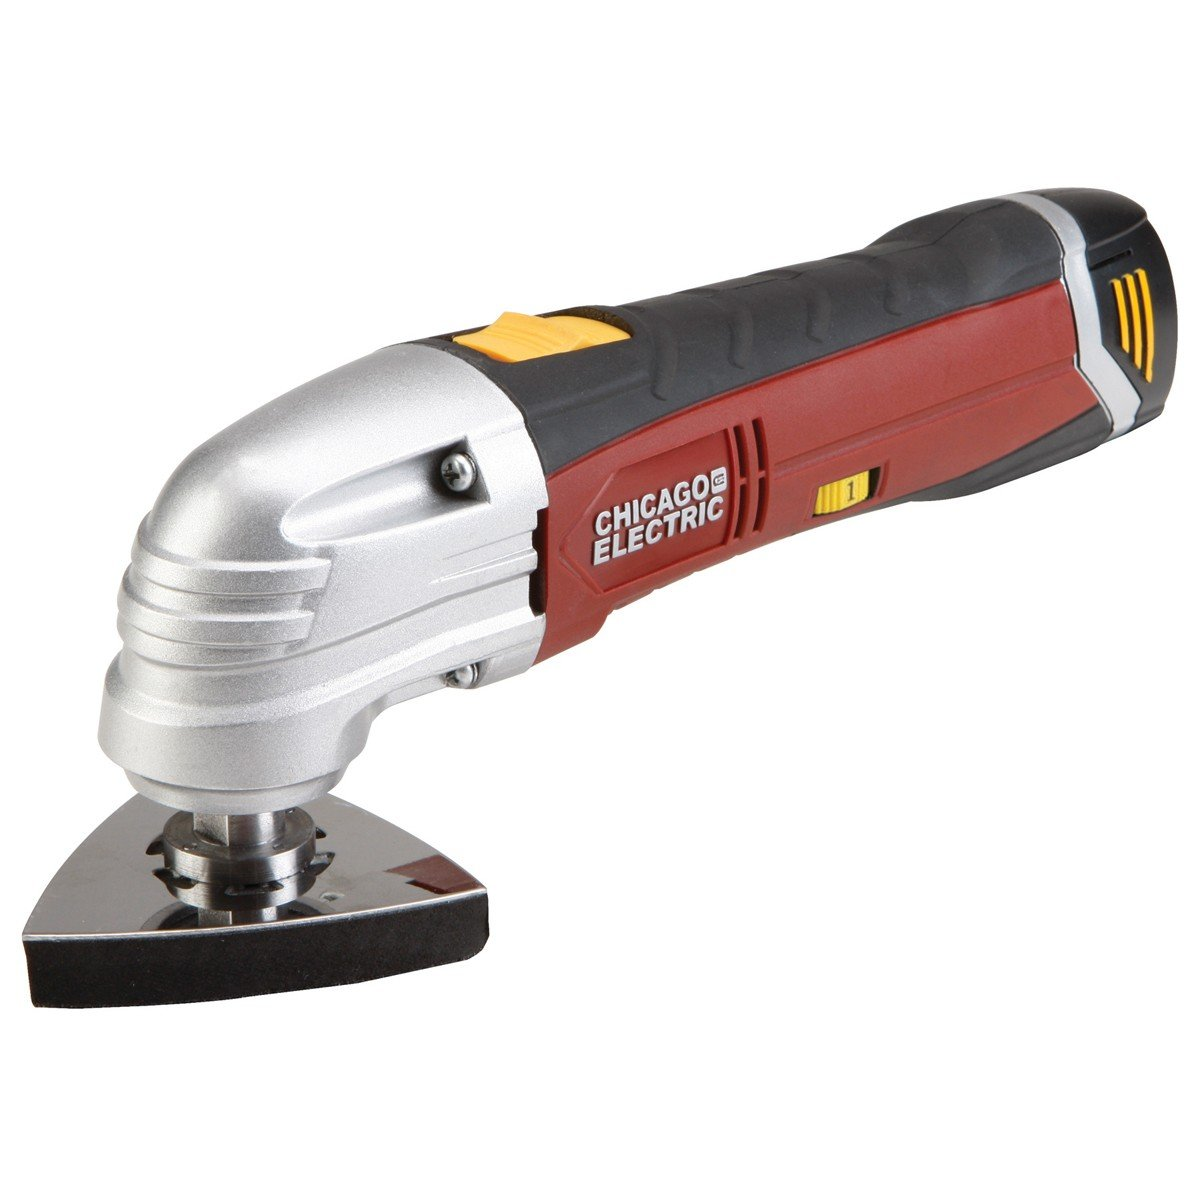 12 Volt Lithium-Ion Variable Speed Oscillating Multifunction Power Tool from TNM